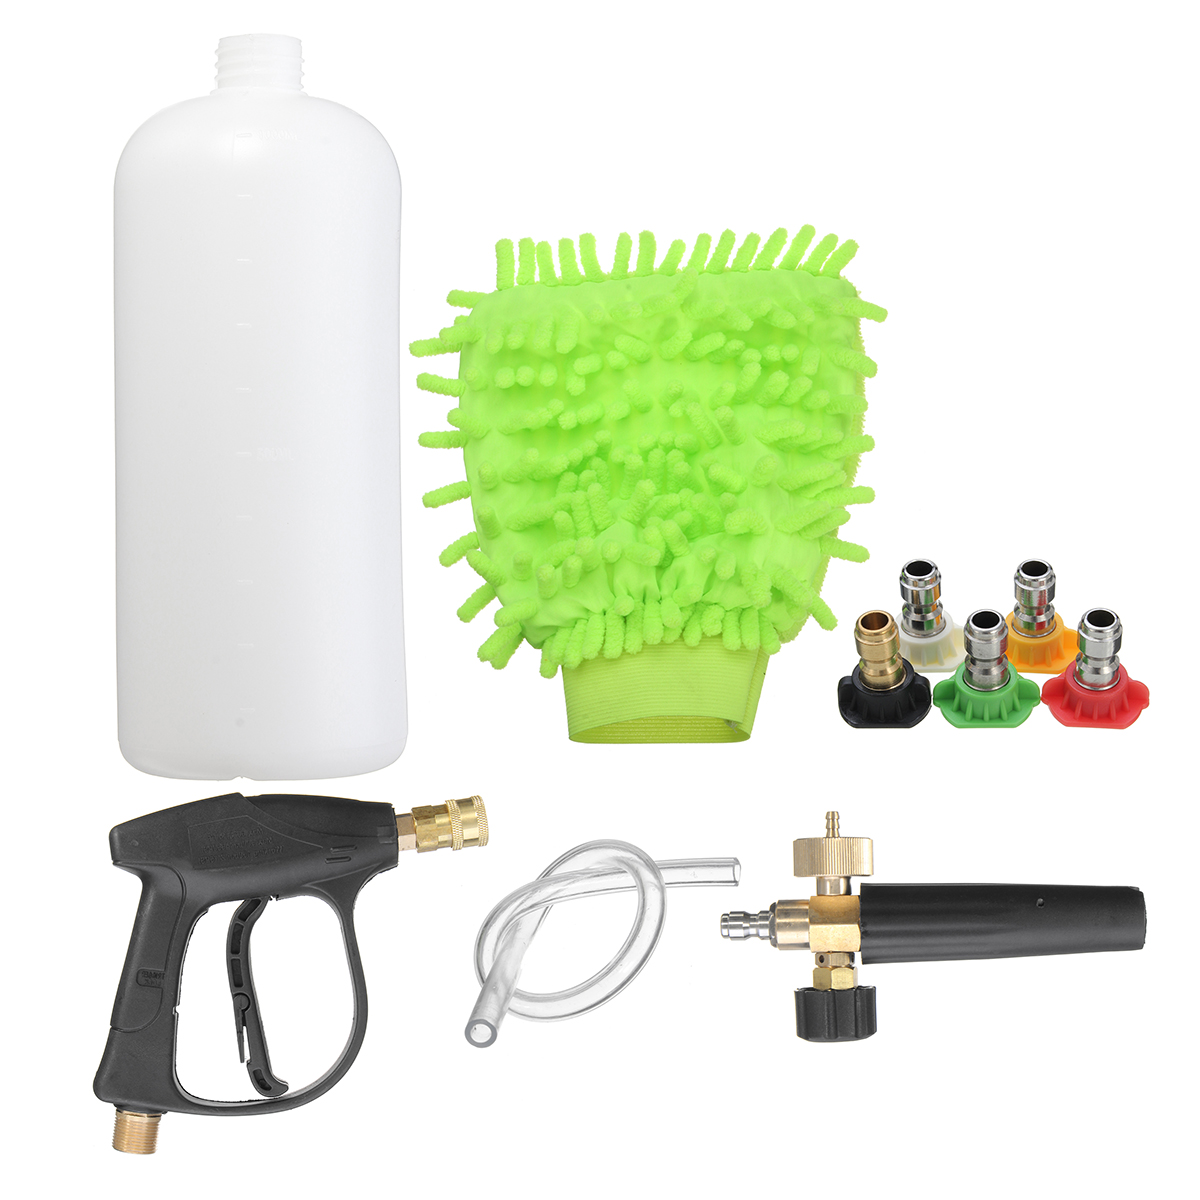 High pressure washer gun water jet snow foam lance cannon